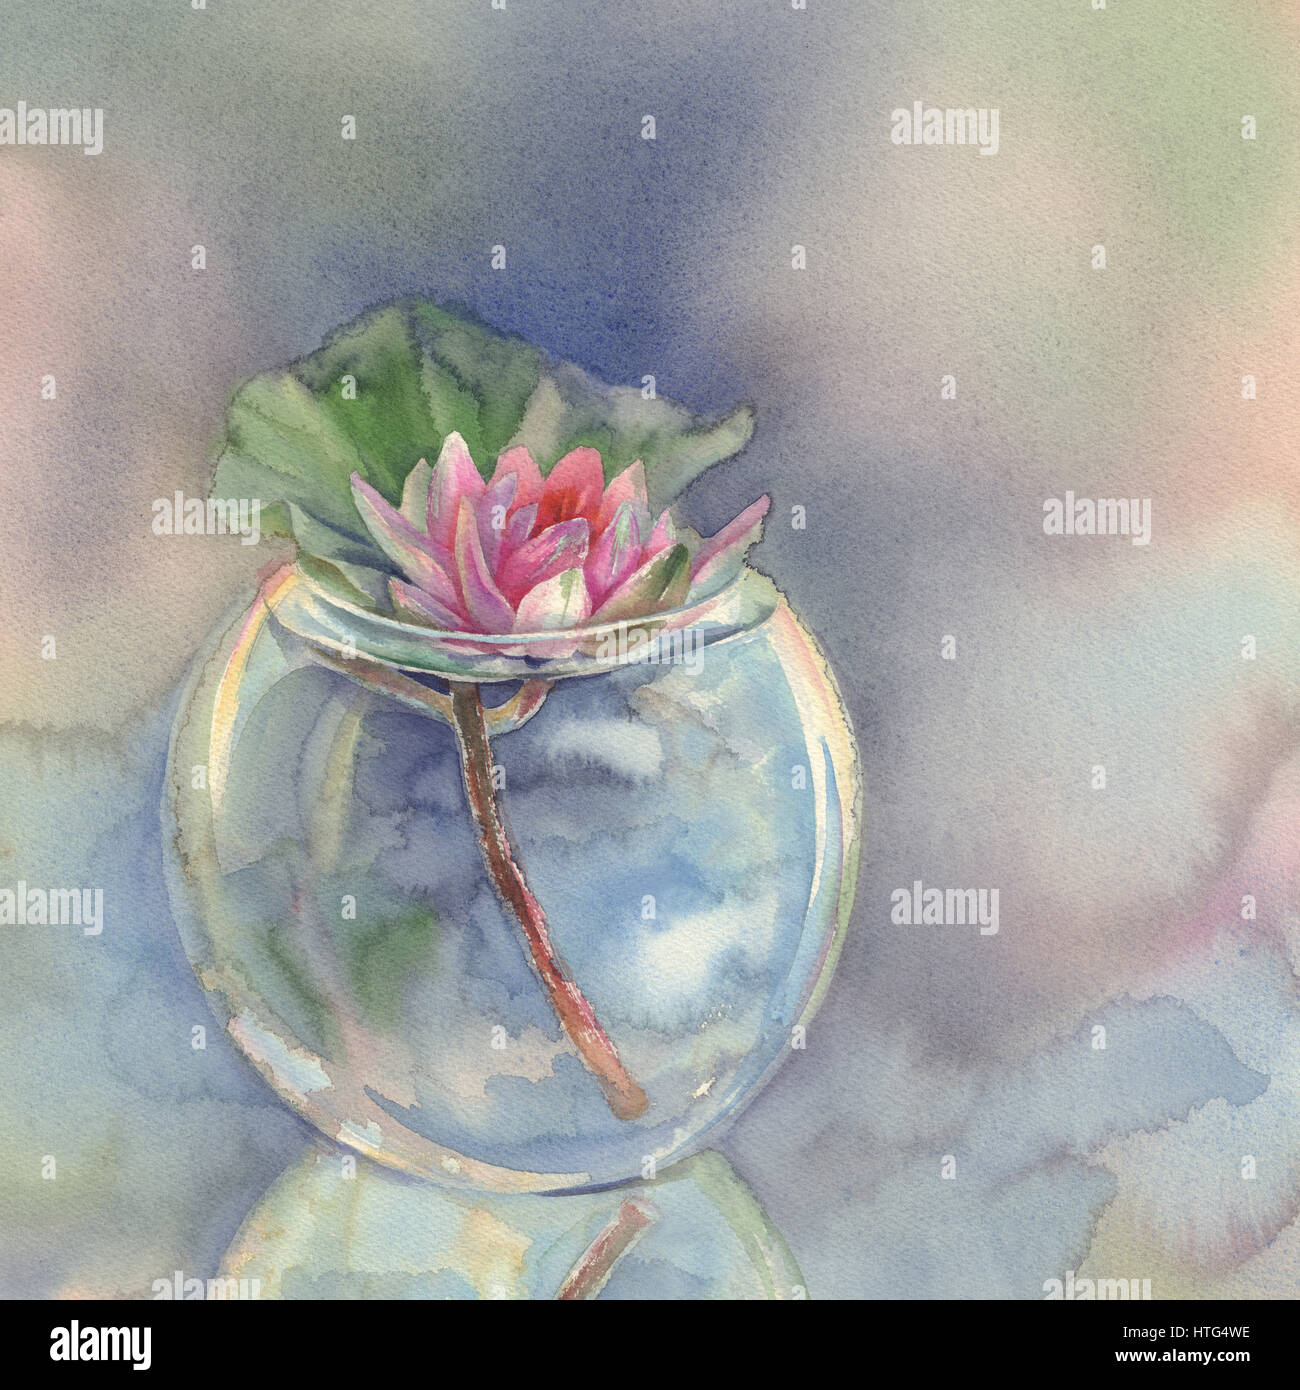 rose water lily in gl vase watercolor background Stock Photo ... on flower butterfly painting, flower wreath painting, flower window painting, bottle flower painting, flower bed painting, flower still life oil paintings, flower table painting, frame painting, flower mirror painting, flower box painting, flower vases with flowers, flower light painting, flower oil paintings christmas, candle painting, bird-and-flower painting, flower white painting, flower bowl painting, modern palette knife painting, flower stand painting, flower girl painting,